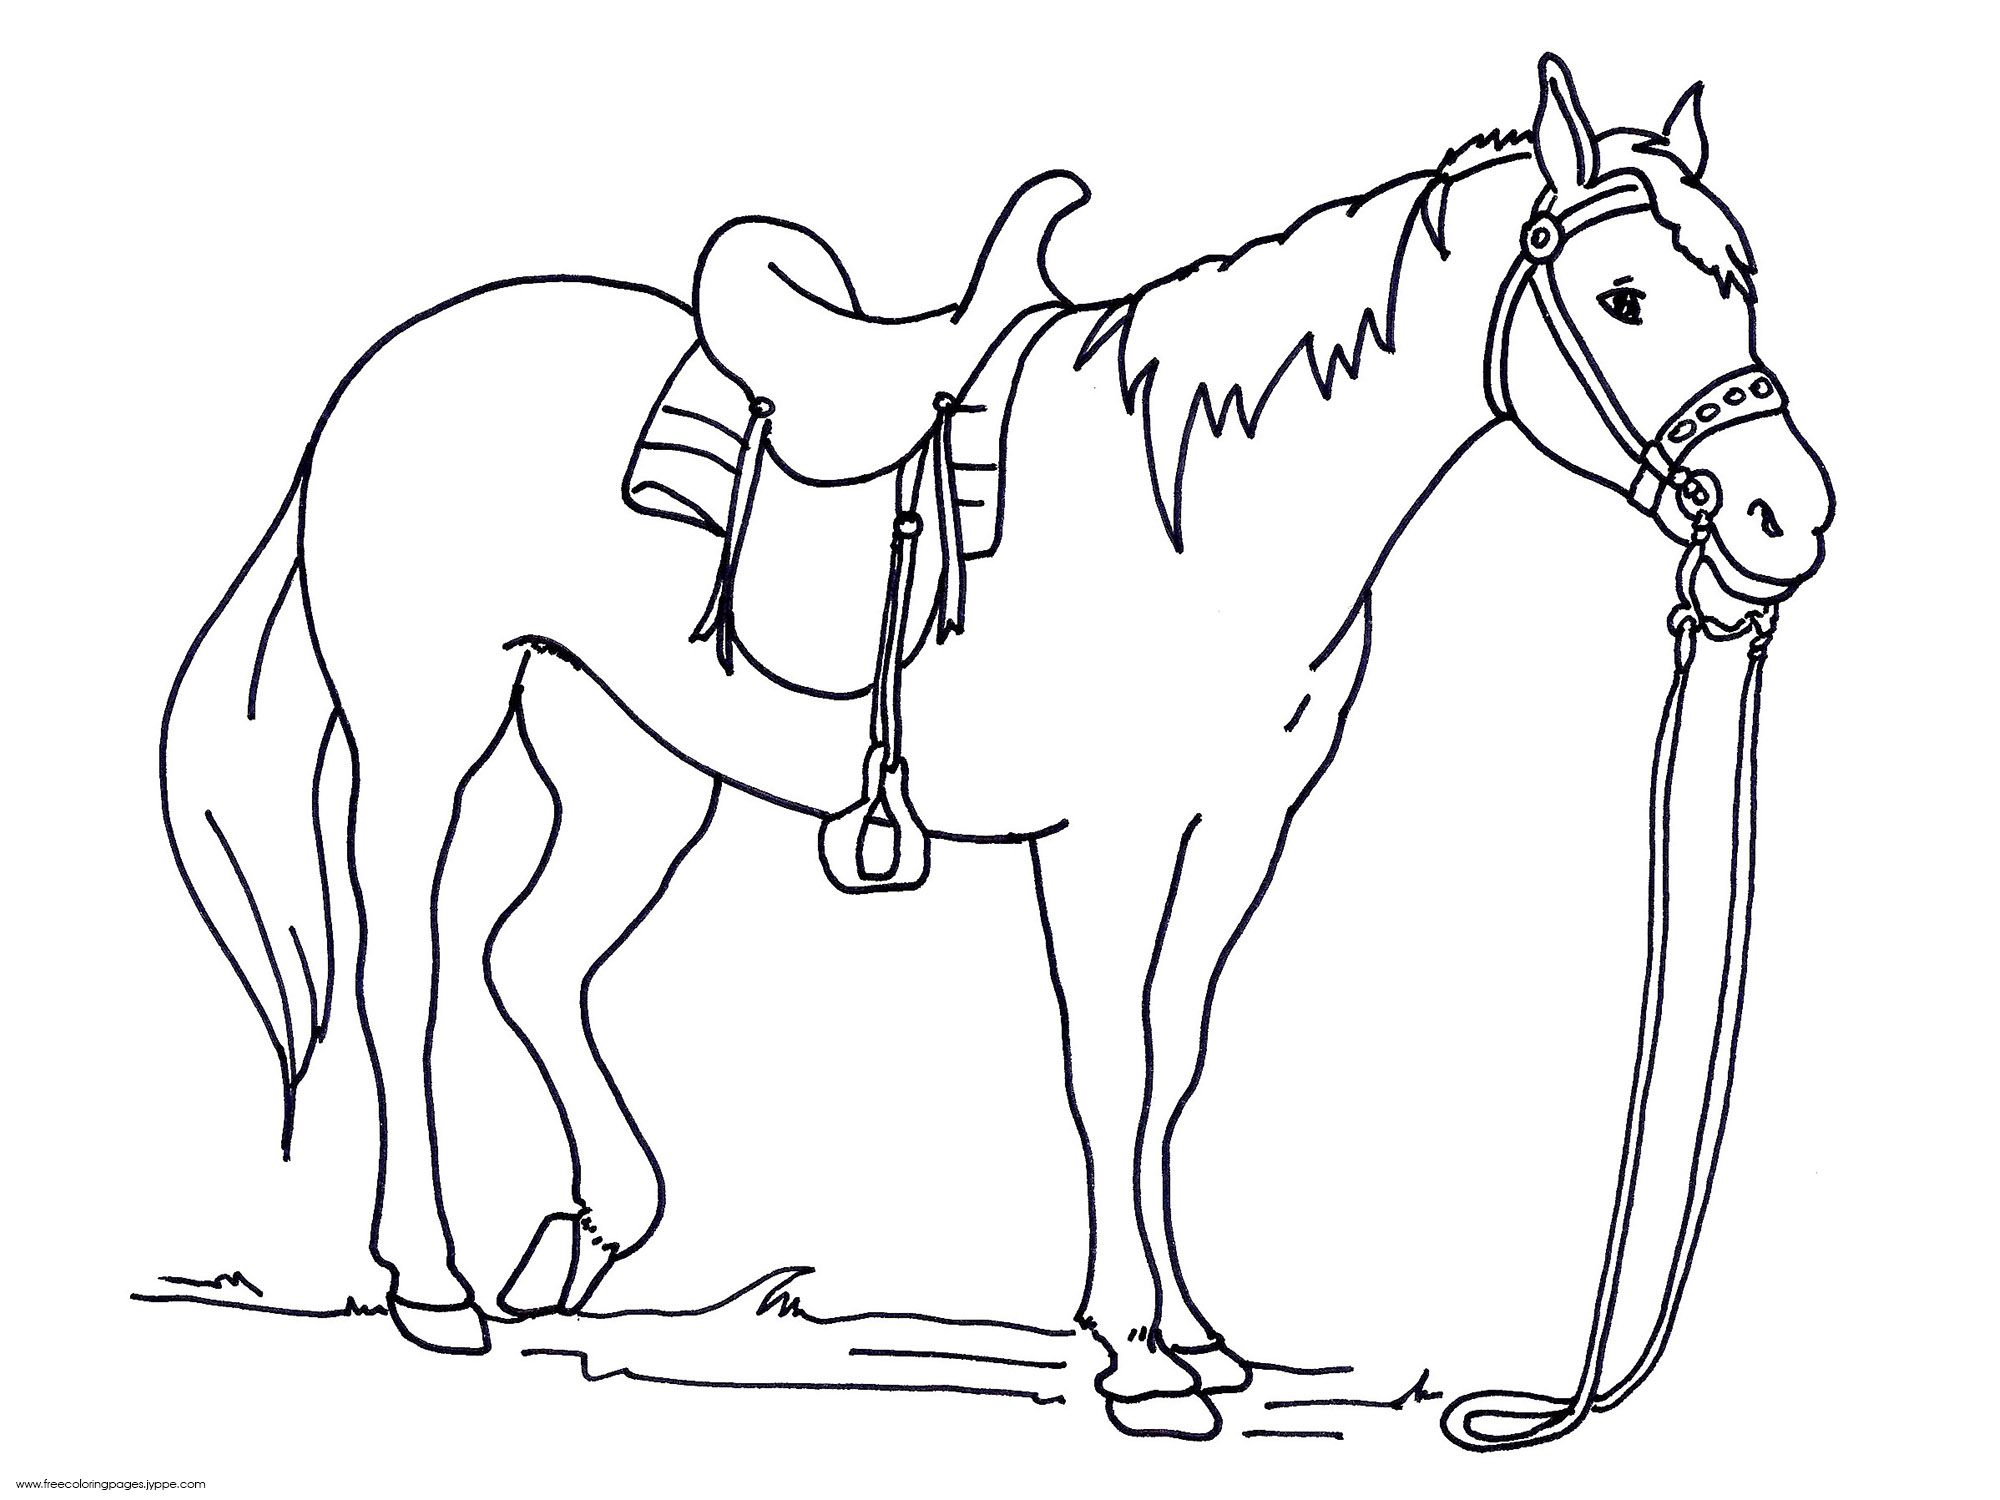 Free coloring horse pictures to print - Horse Coloring Pages Printable Free Coloring Pages